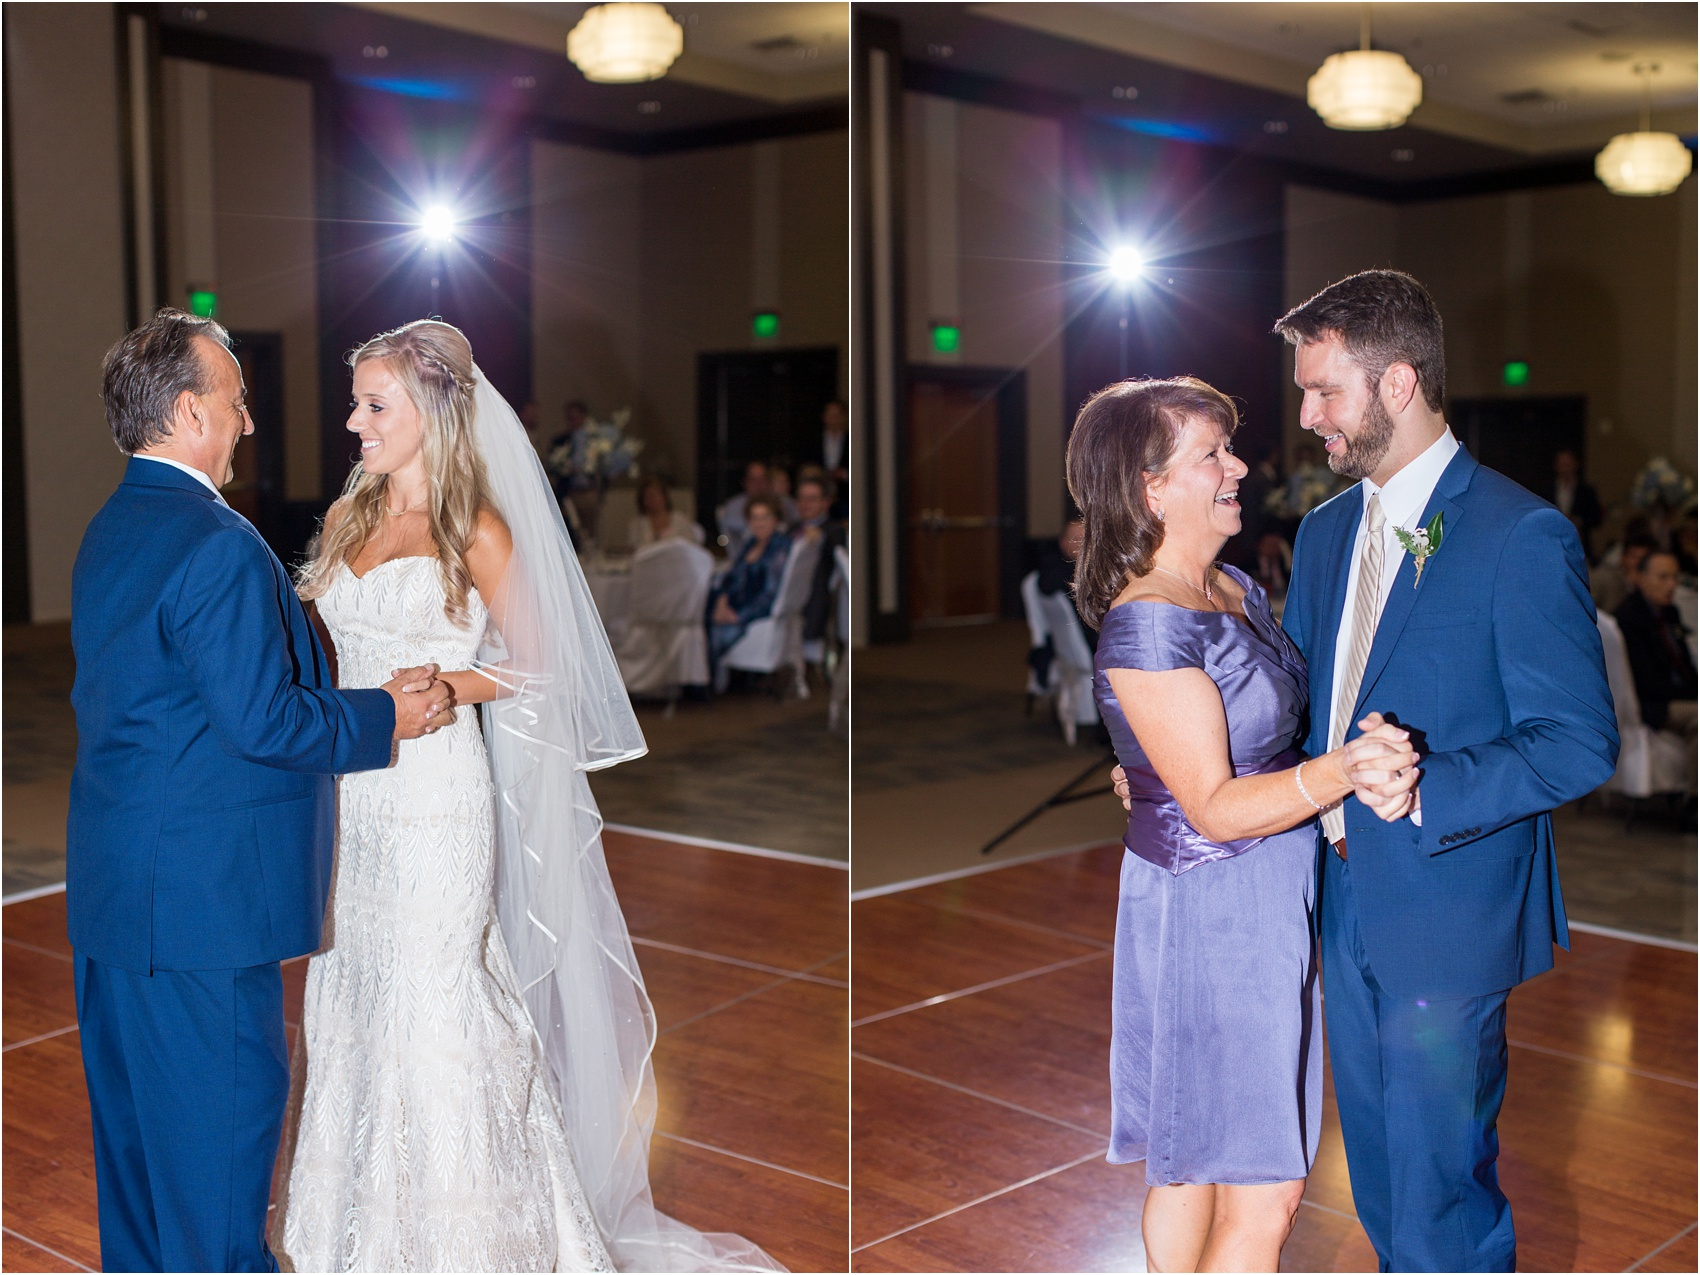 Savannah Eve Photography- Barkie-Wilson Wedding- Sneak Peek-65.jpg